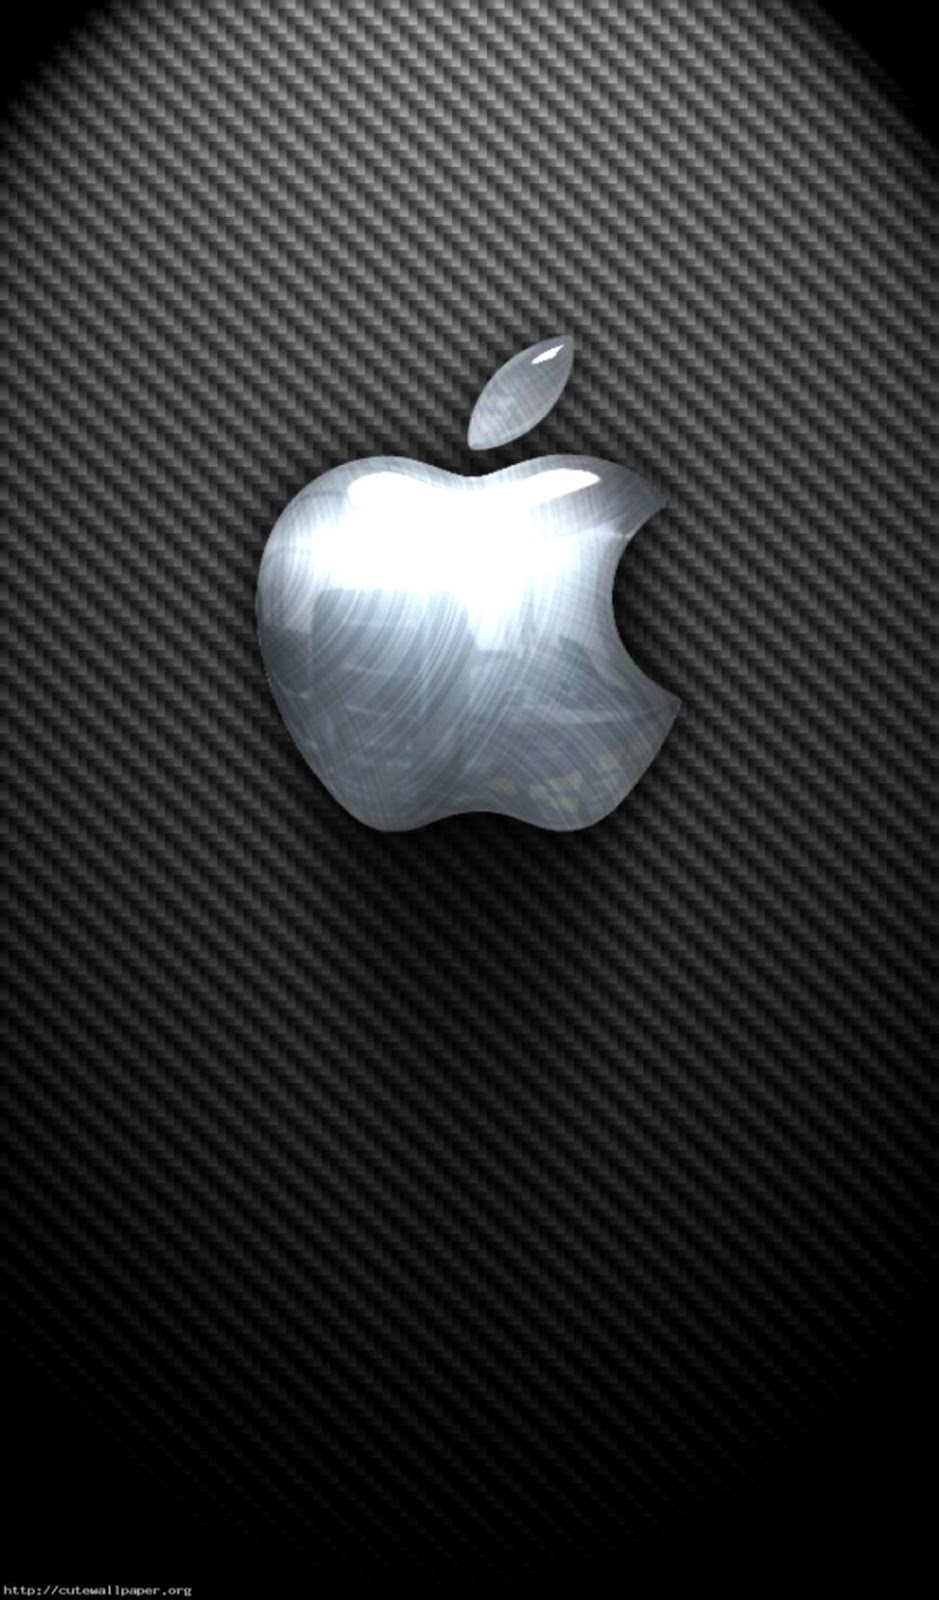 Iphone 4 Wallpaper Size Room Wallpapers